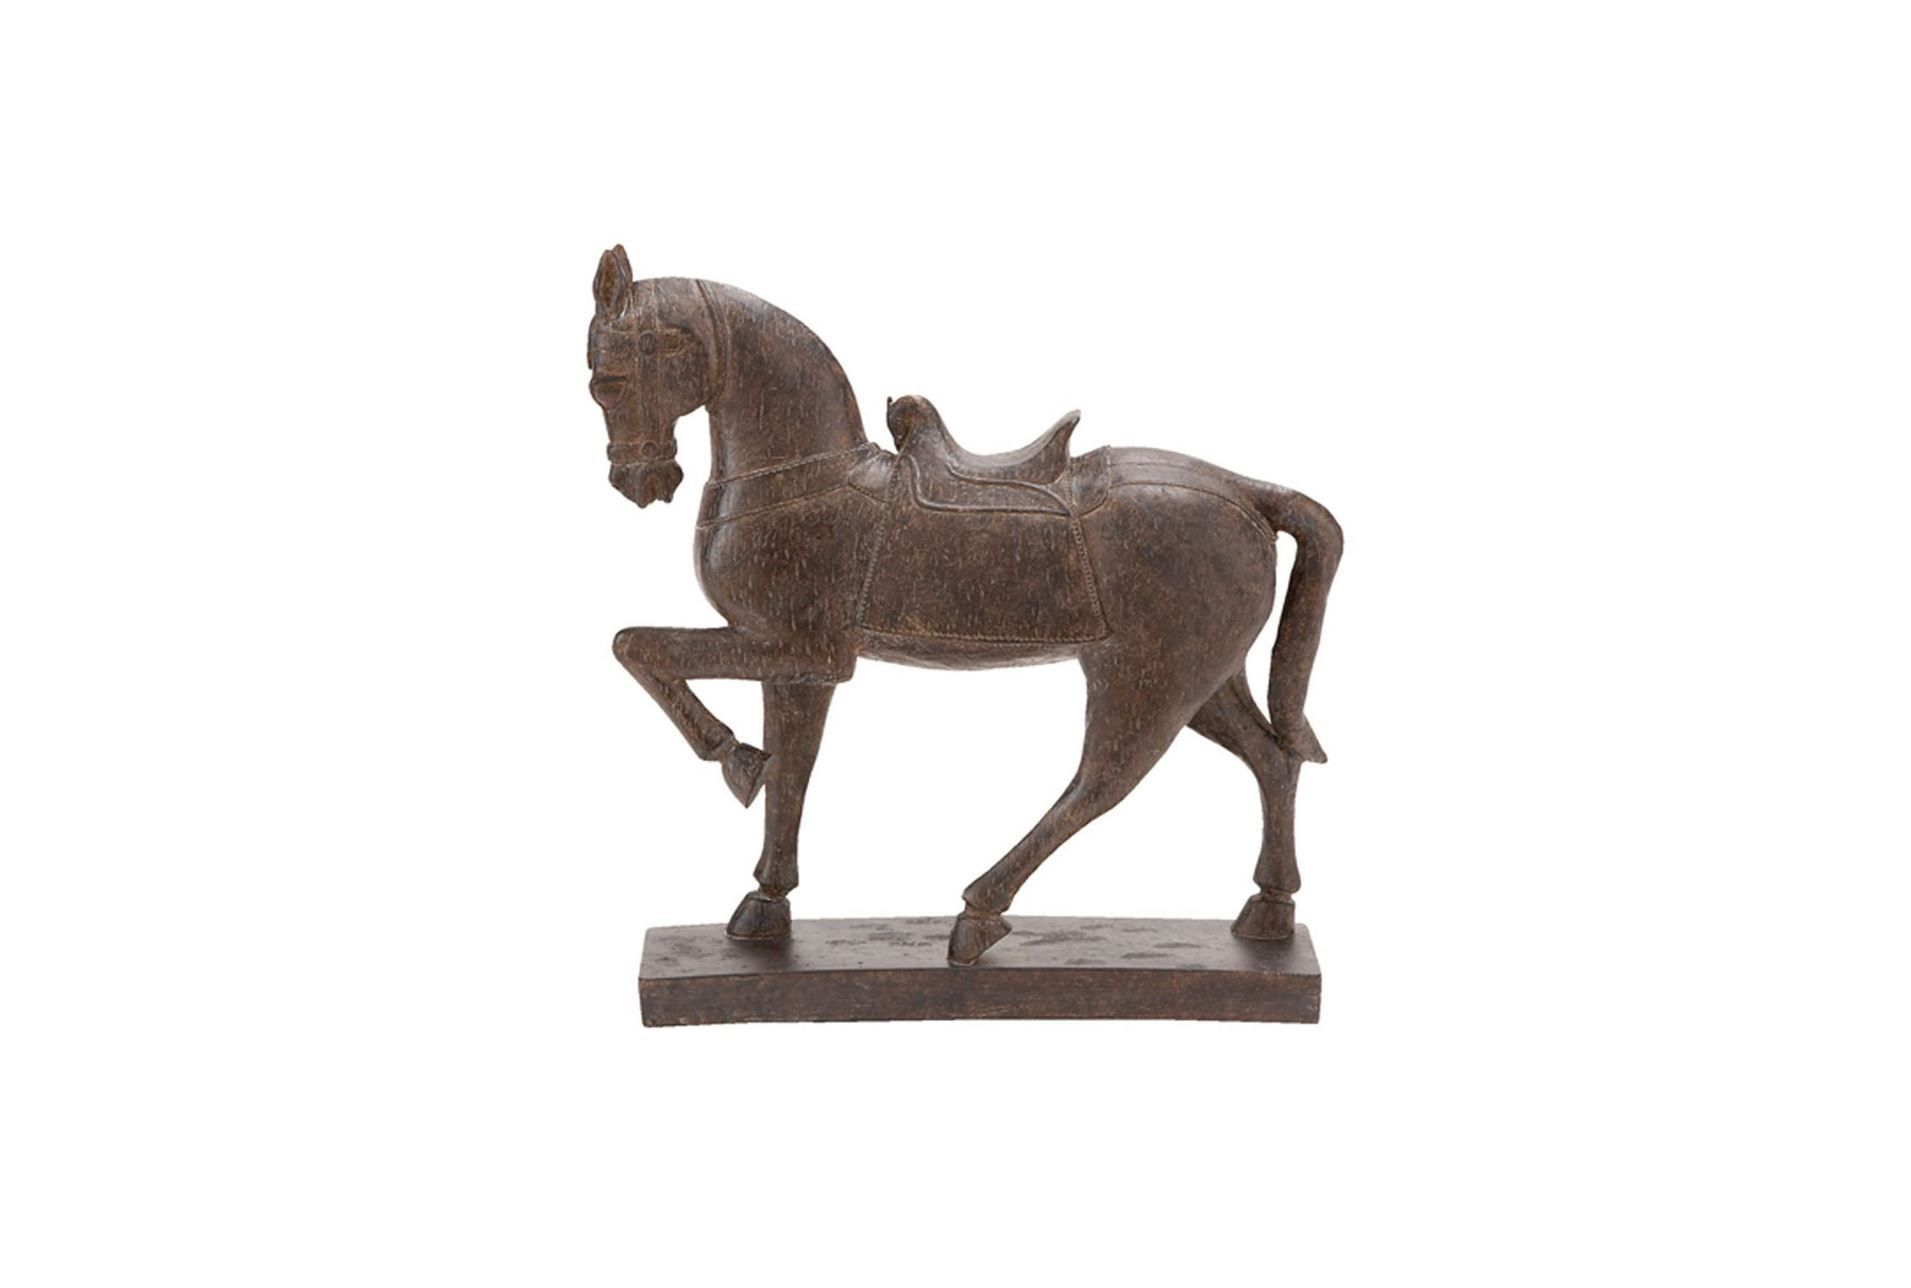 Horse statue for my kitchen counter instead of bouquet of flowers that never last.